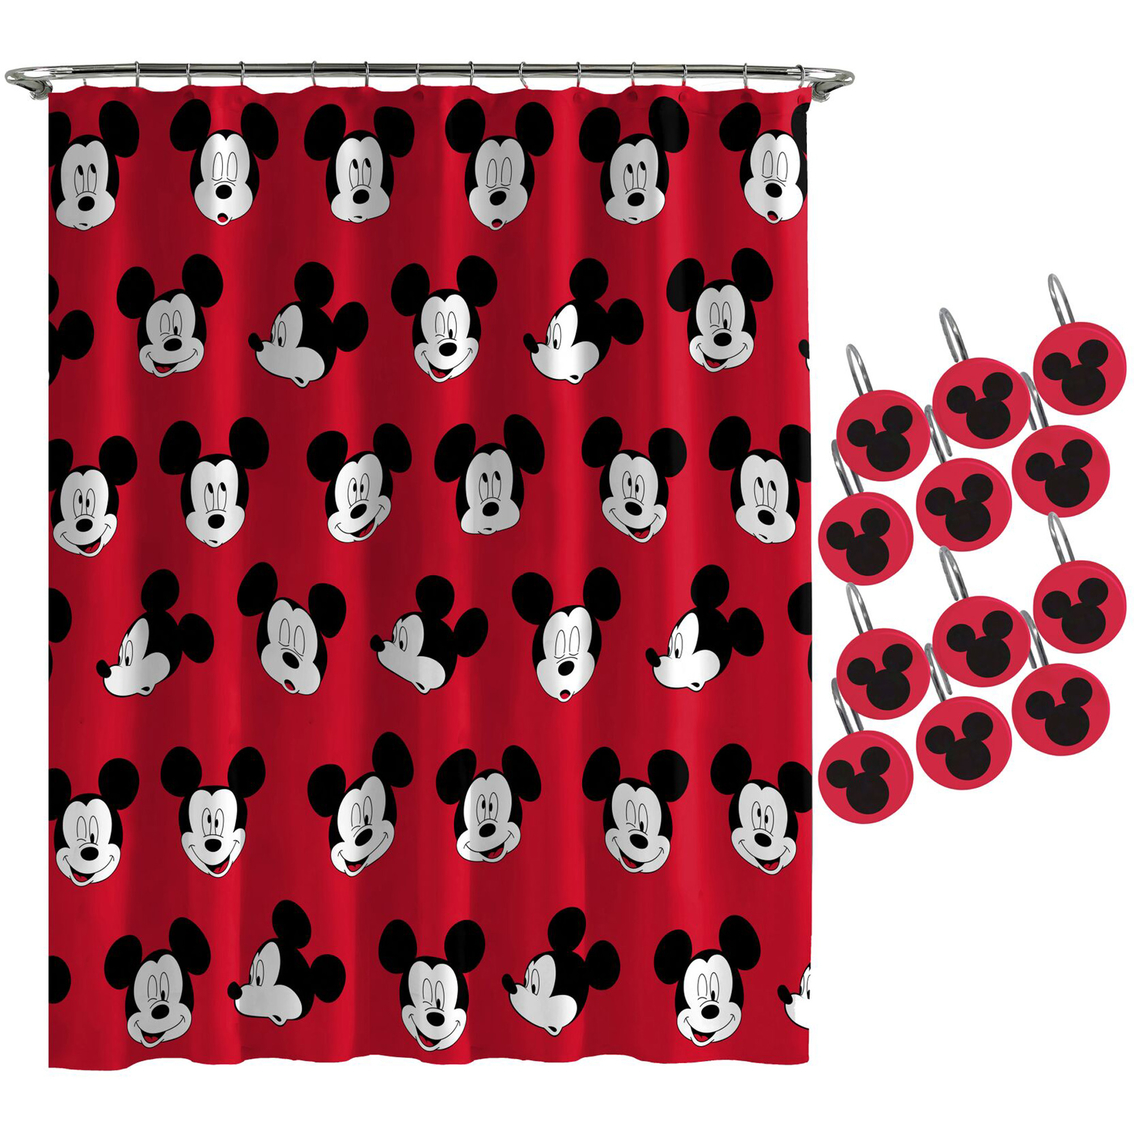 Mickey Cute Faces Shower Curtain Hook Set Shower